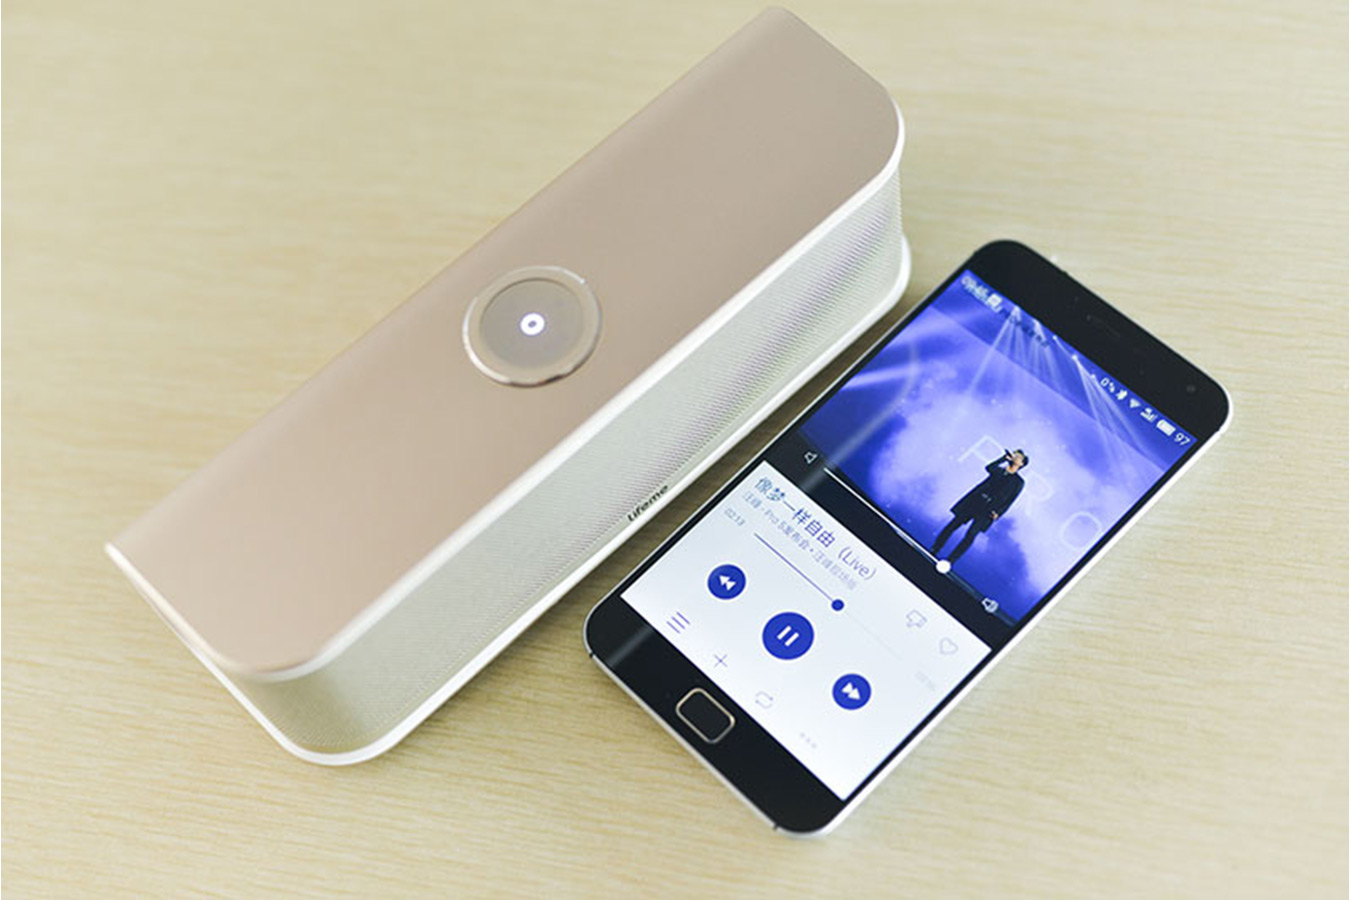 Портативная колонка Meizu Lifeme BTS10 Bluetooth Speaker серебристого цвета